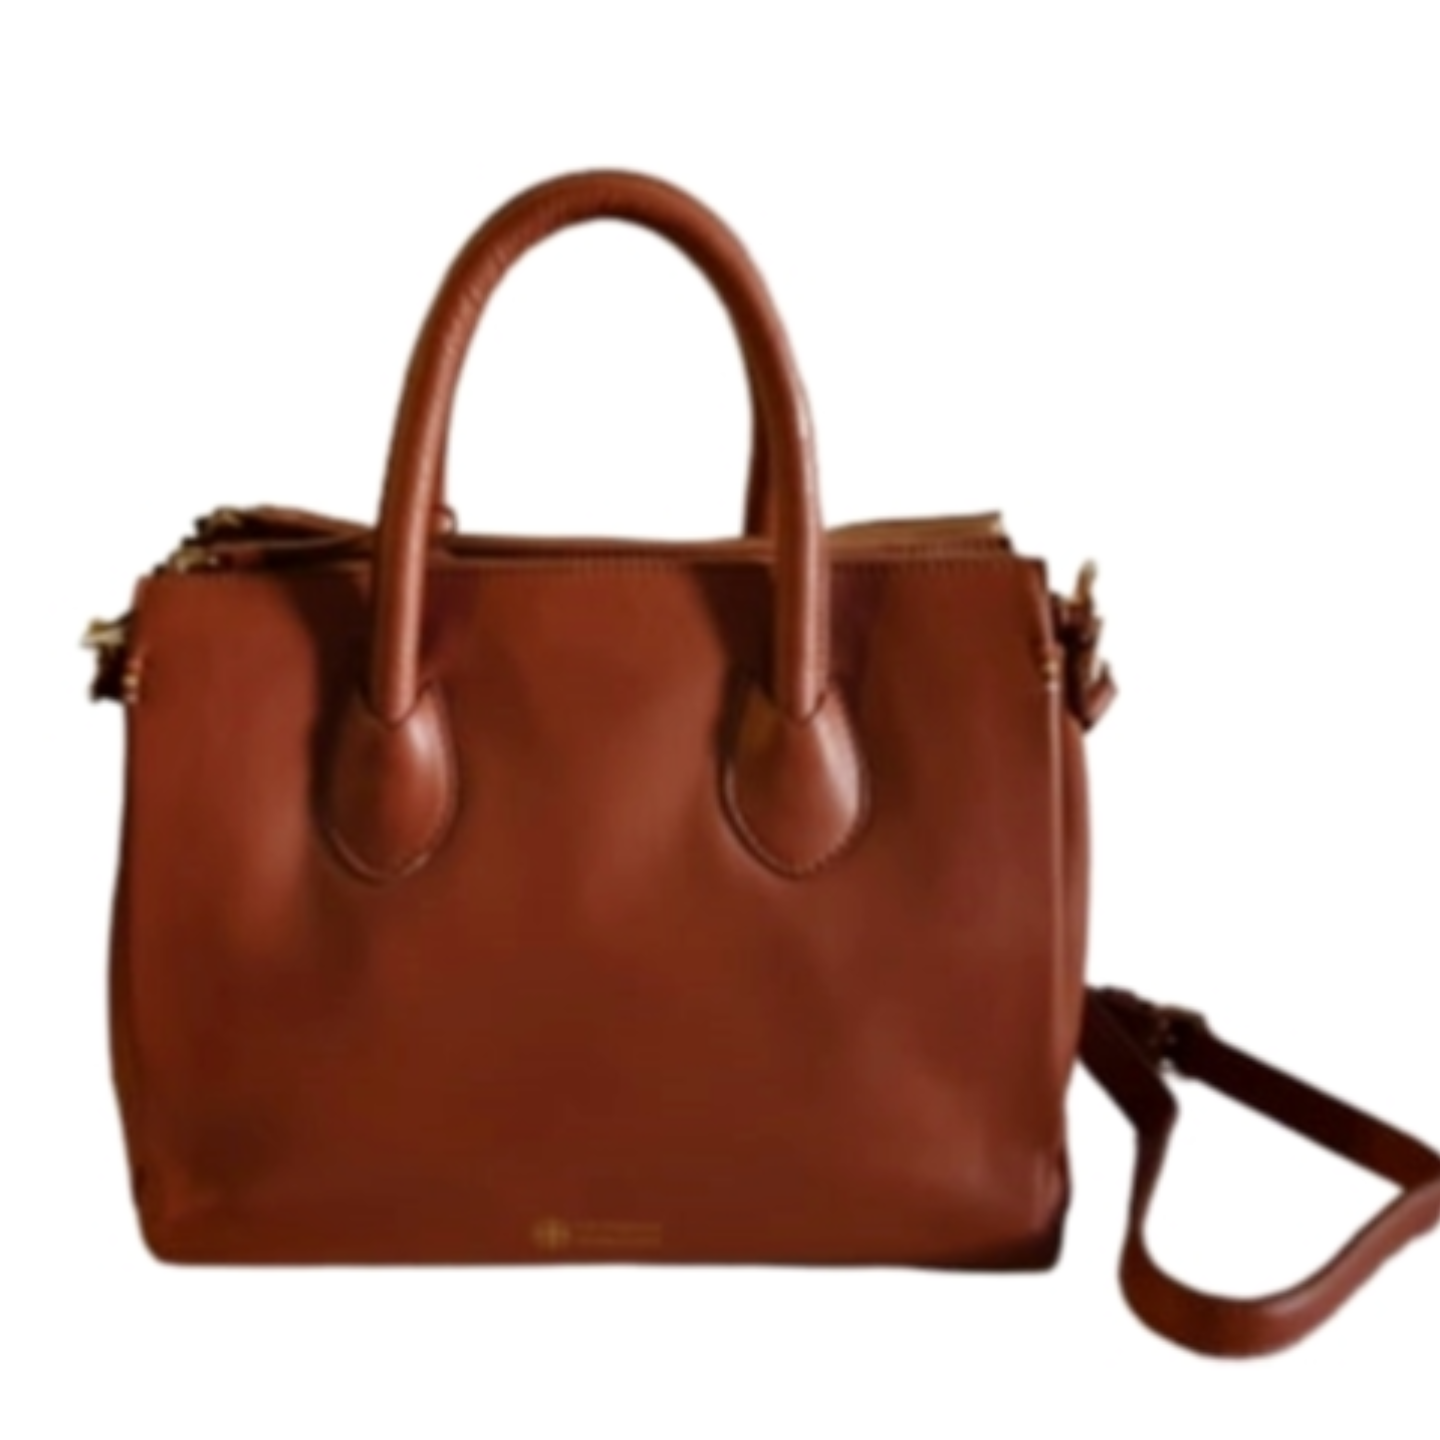 Kyoto Cognac Cross body Satchel Handbag